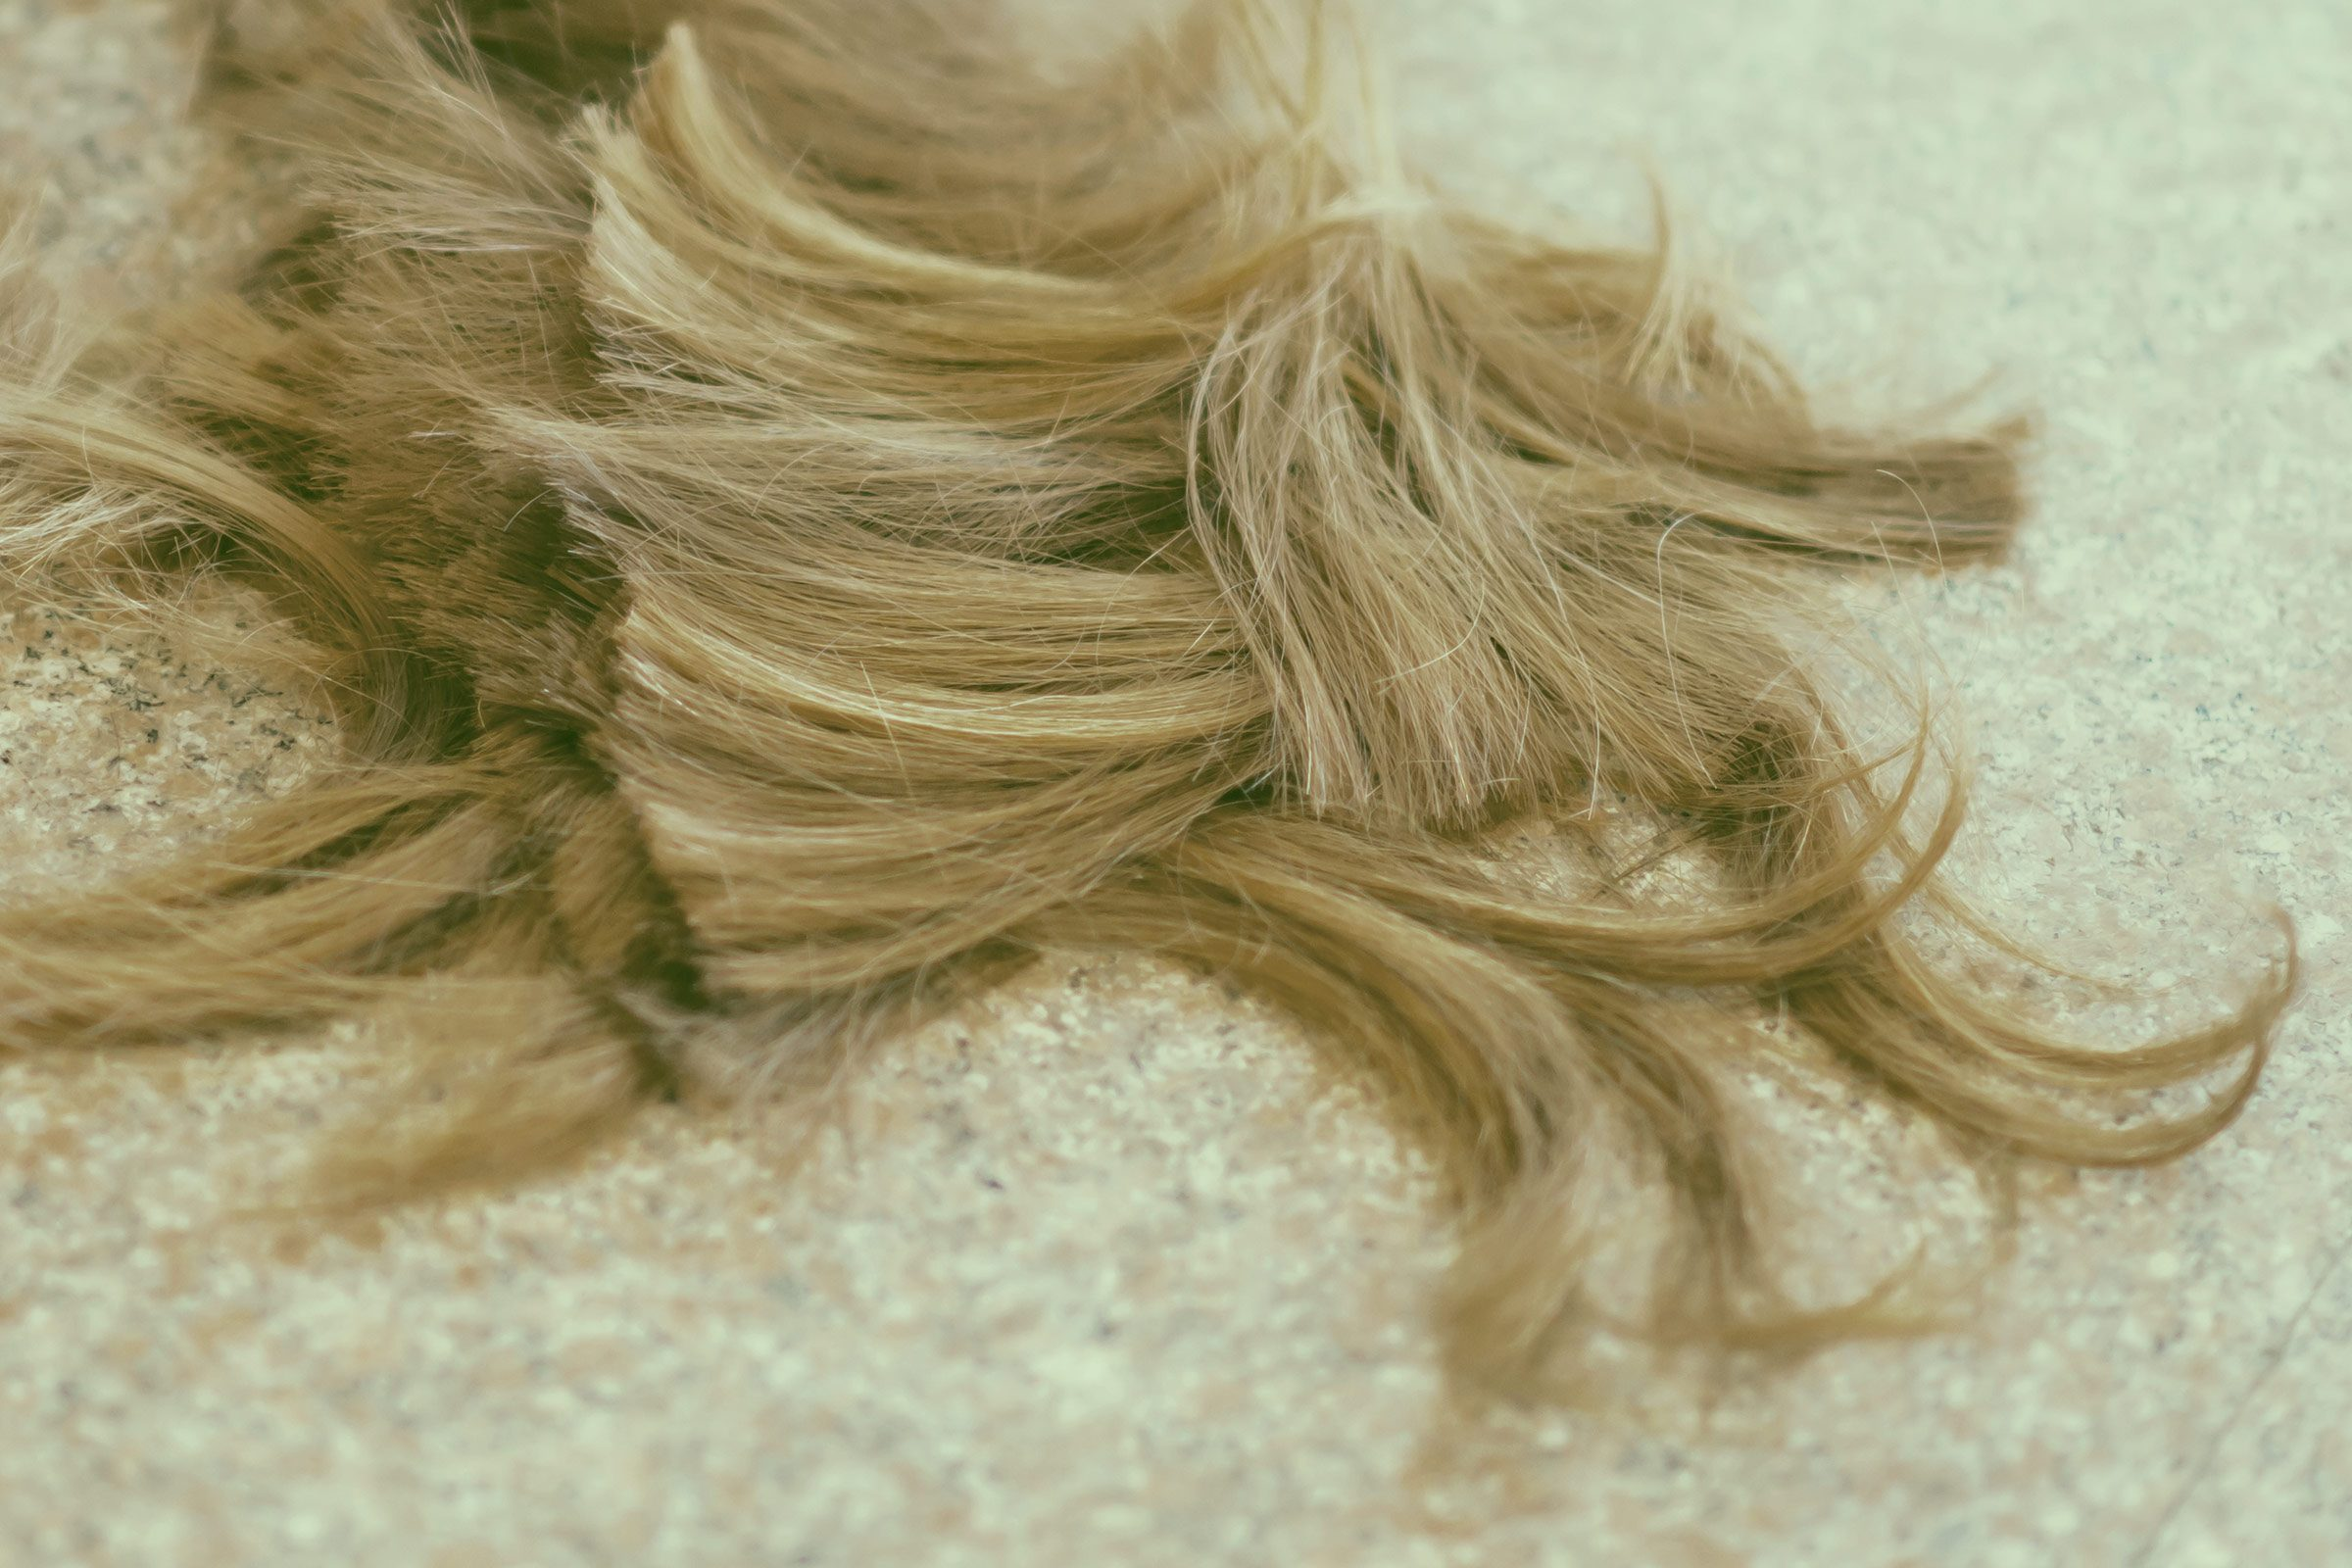 Human or hog hair, or duck feathers